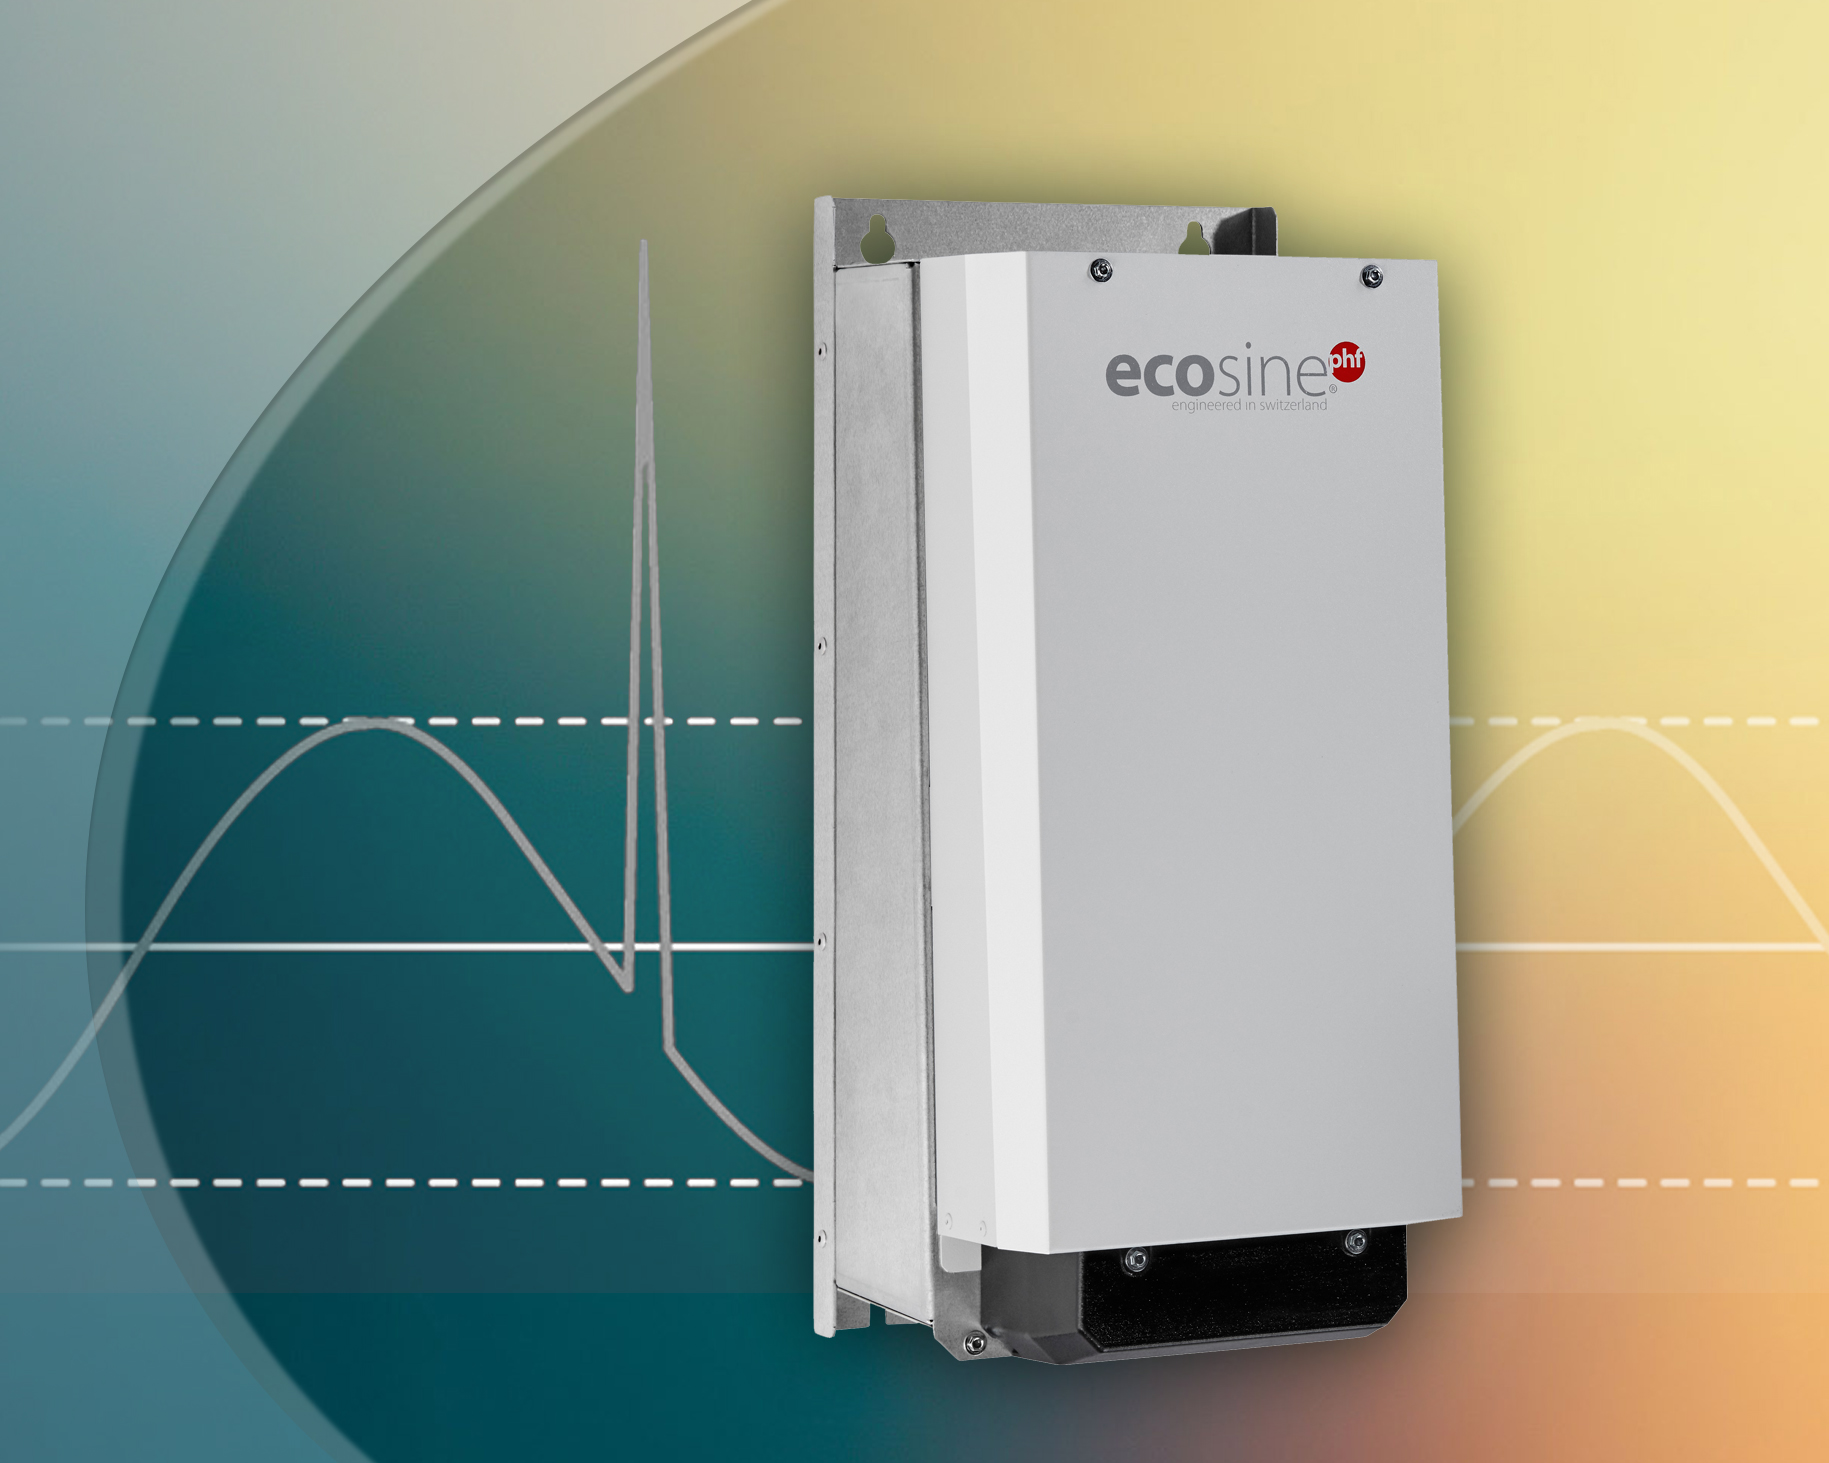 IP20 versions of ecosine evo passive harmonic filters now available from Schaffner